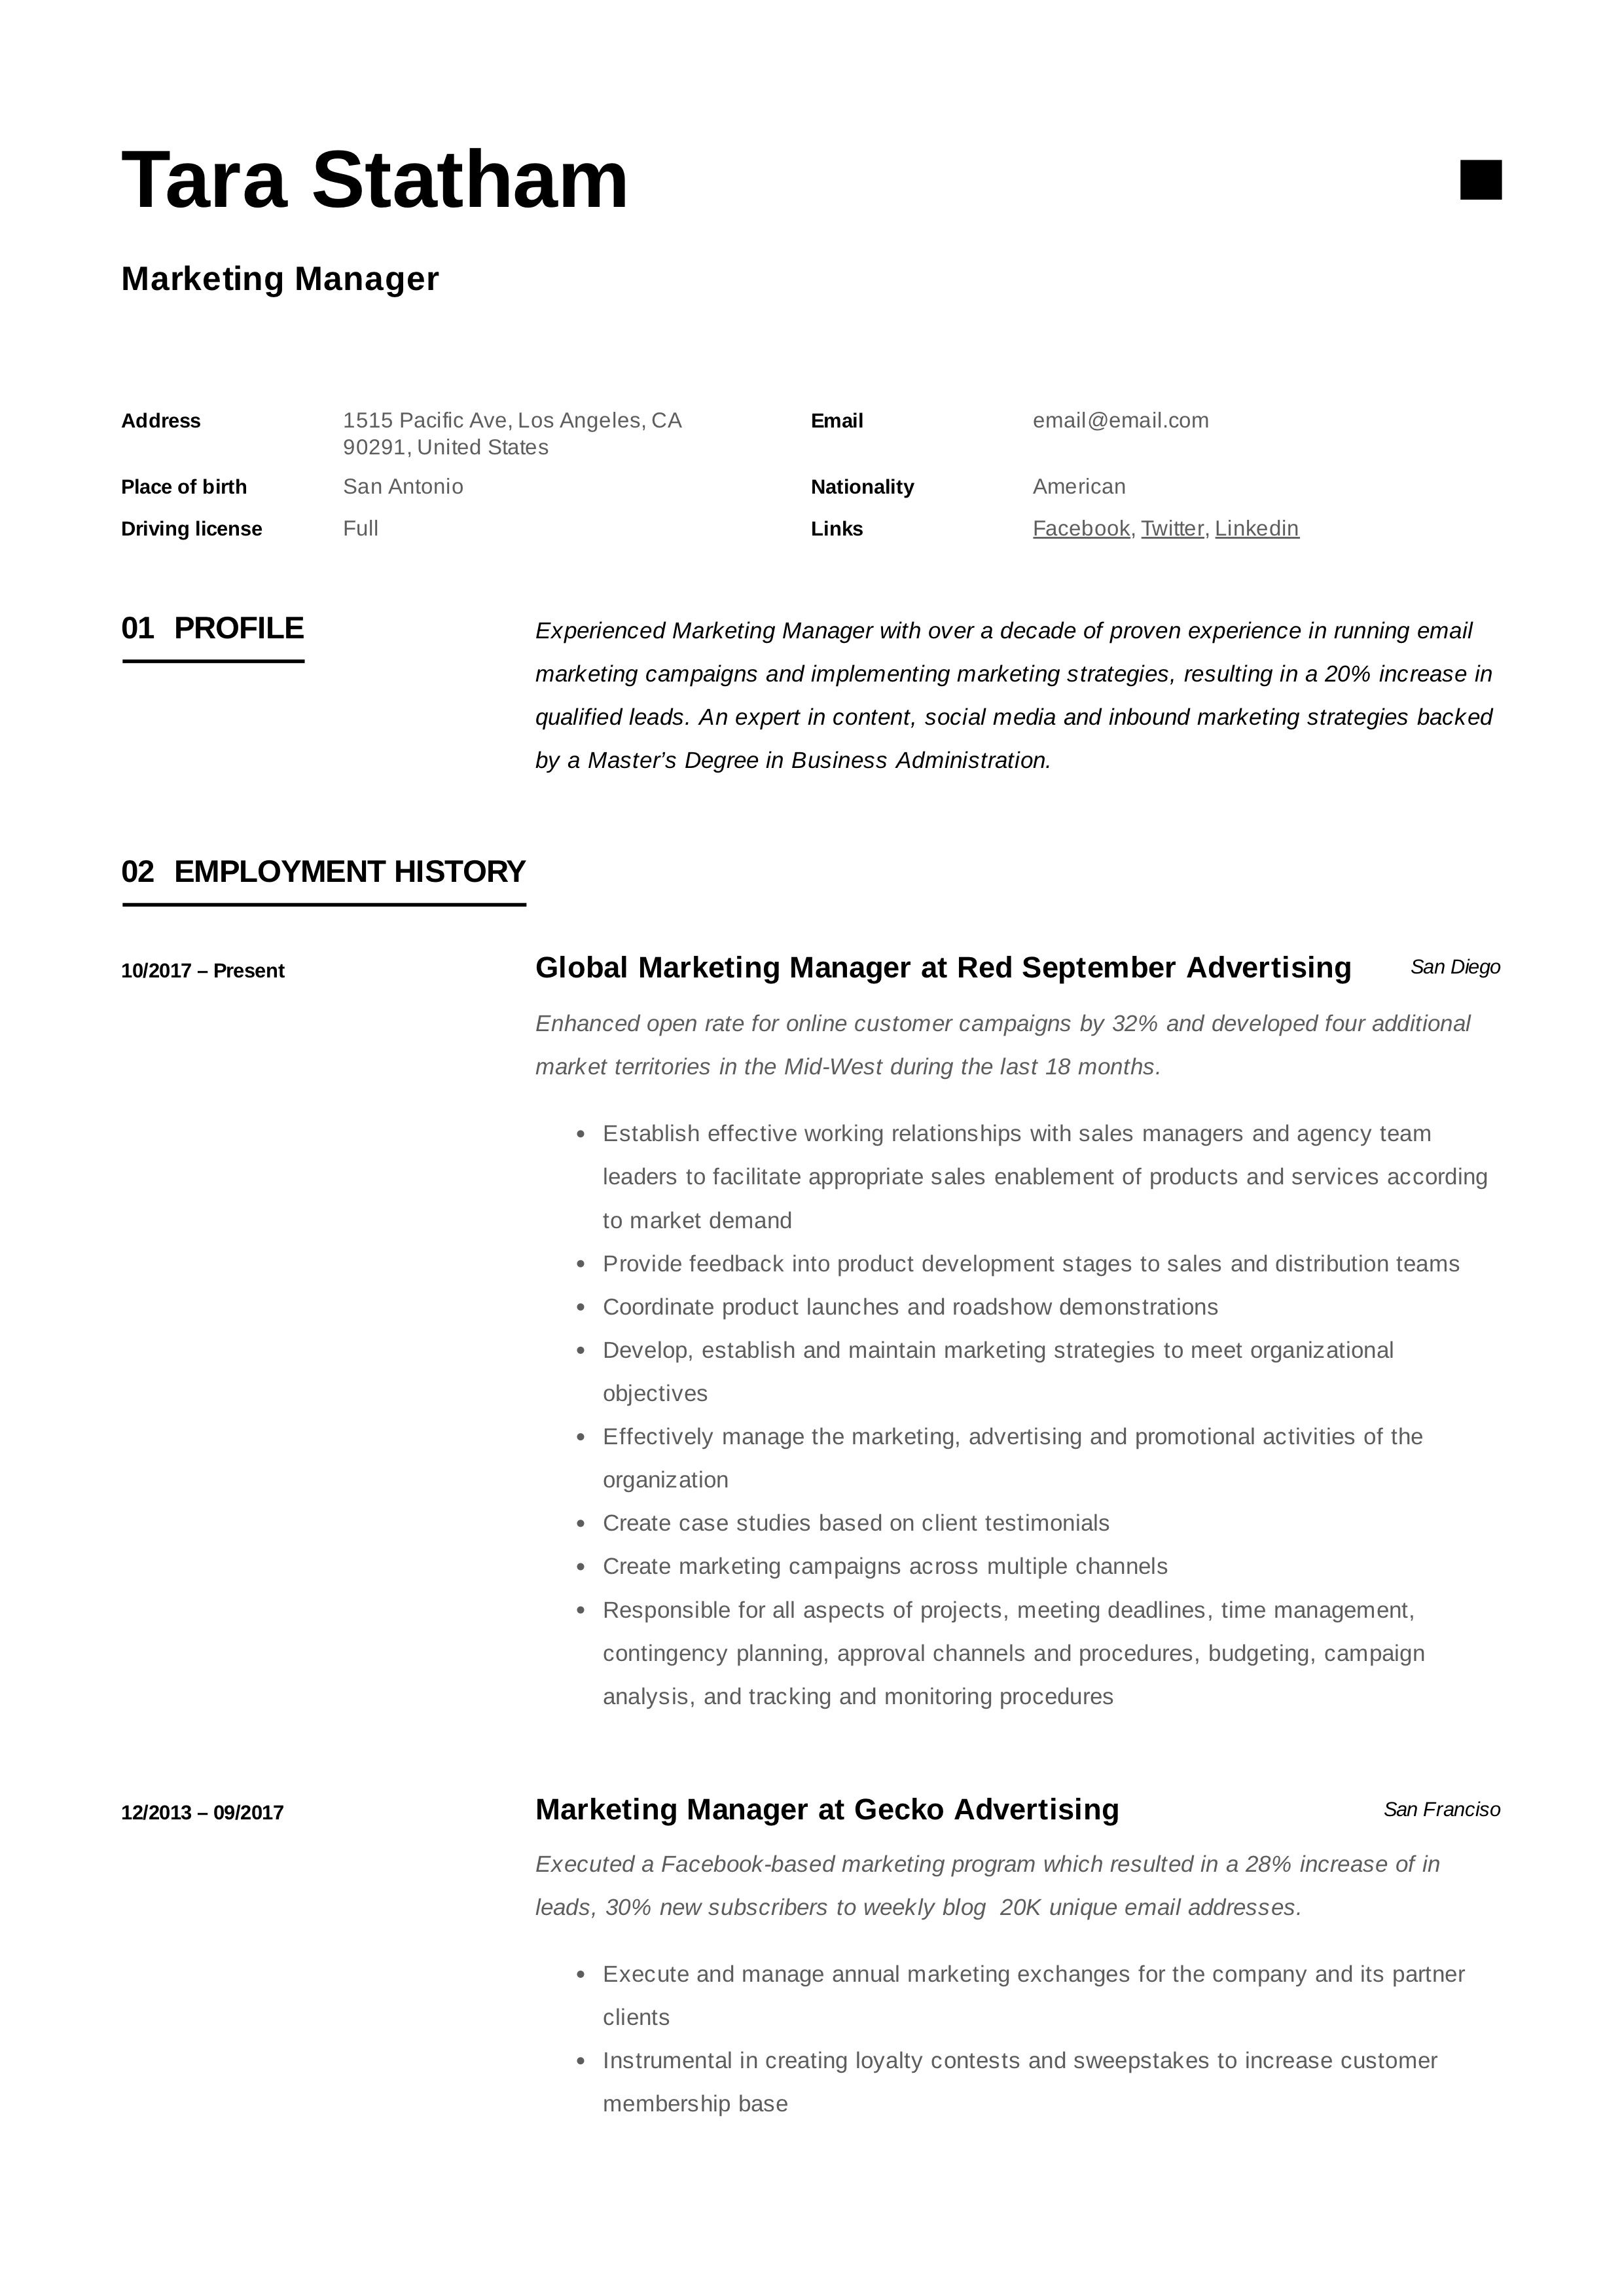 Marketing Manager Resume Writing Guide In 2020 With Images